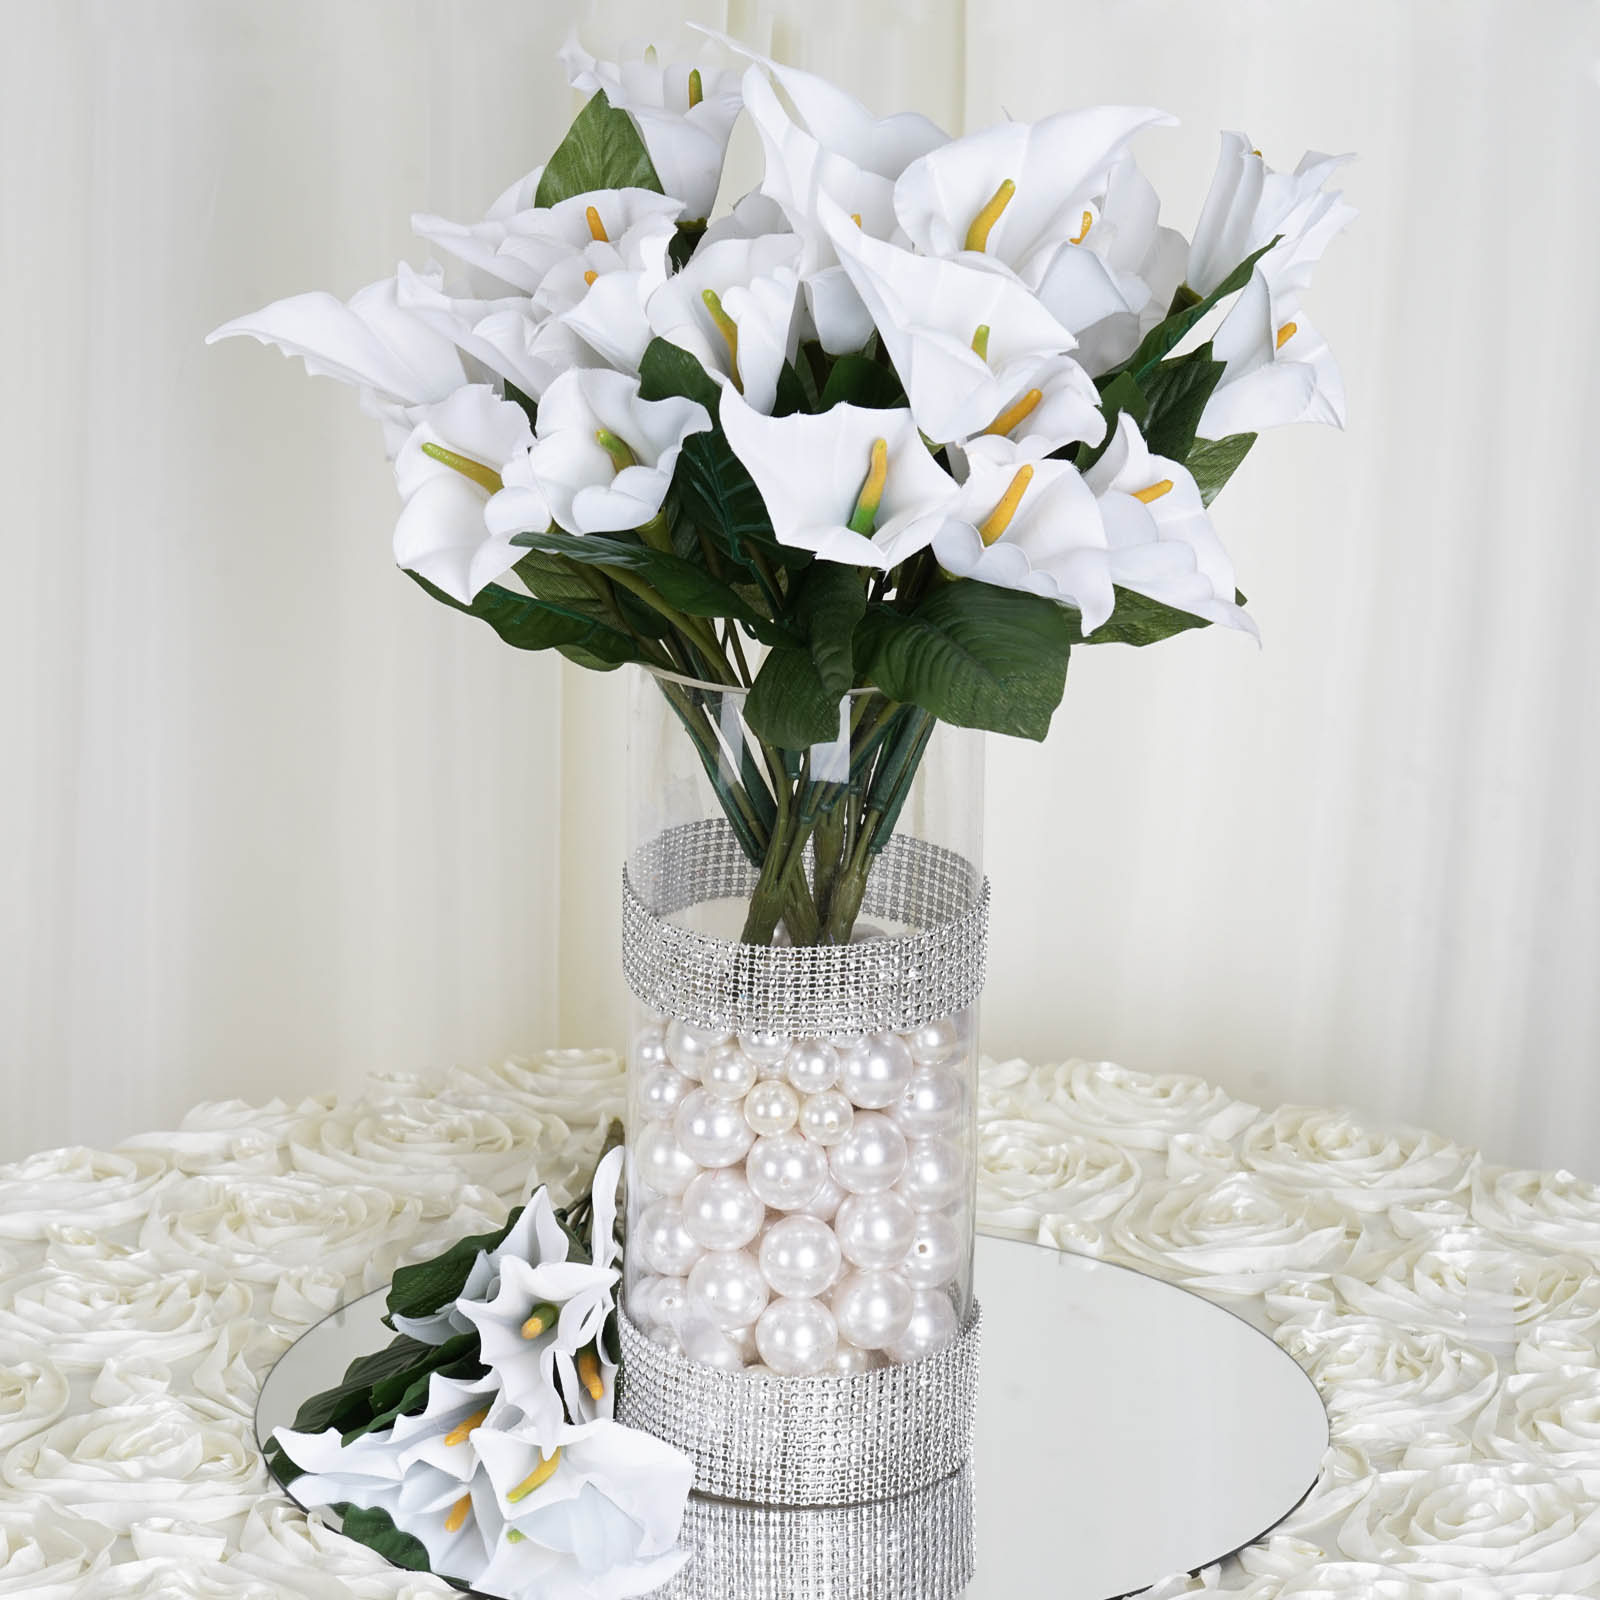 Modern where to Buy Cheap Flowers for Wedding Images Design Ideas ...